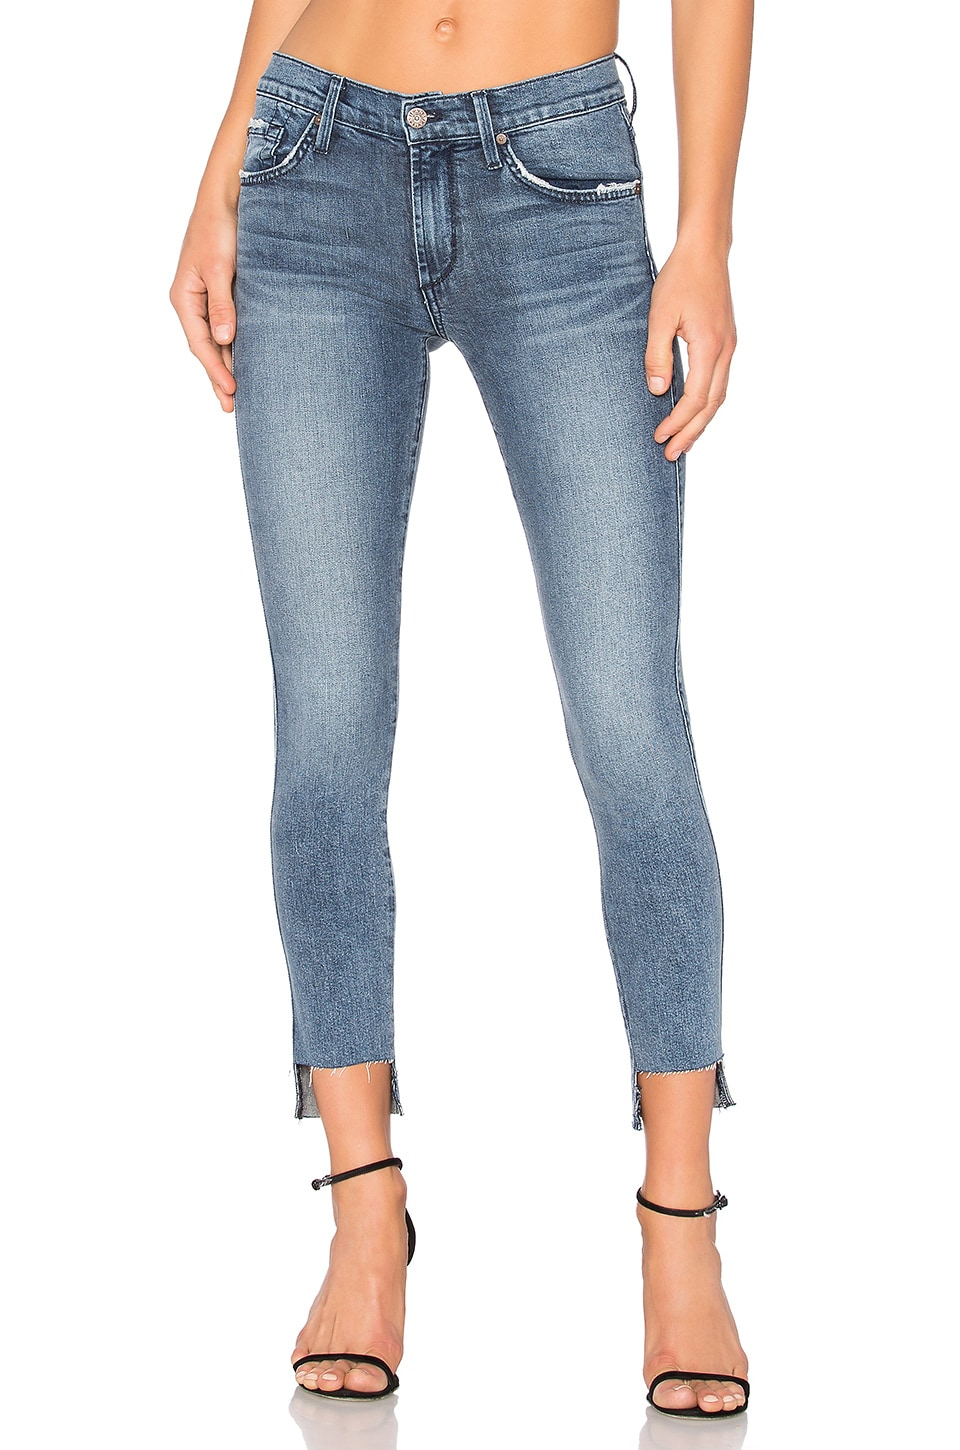 Twiggy Ankle Hi Lo by James Jeans